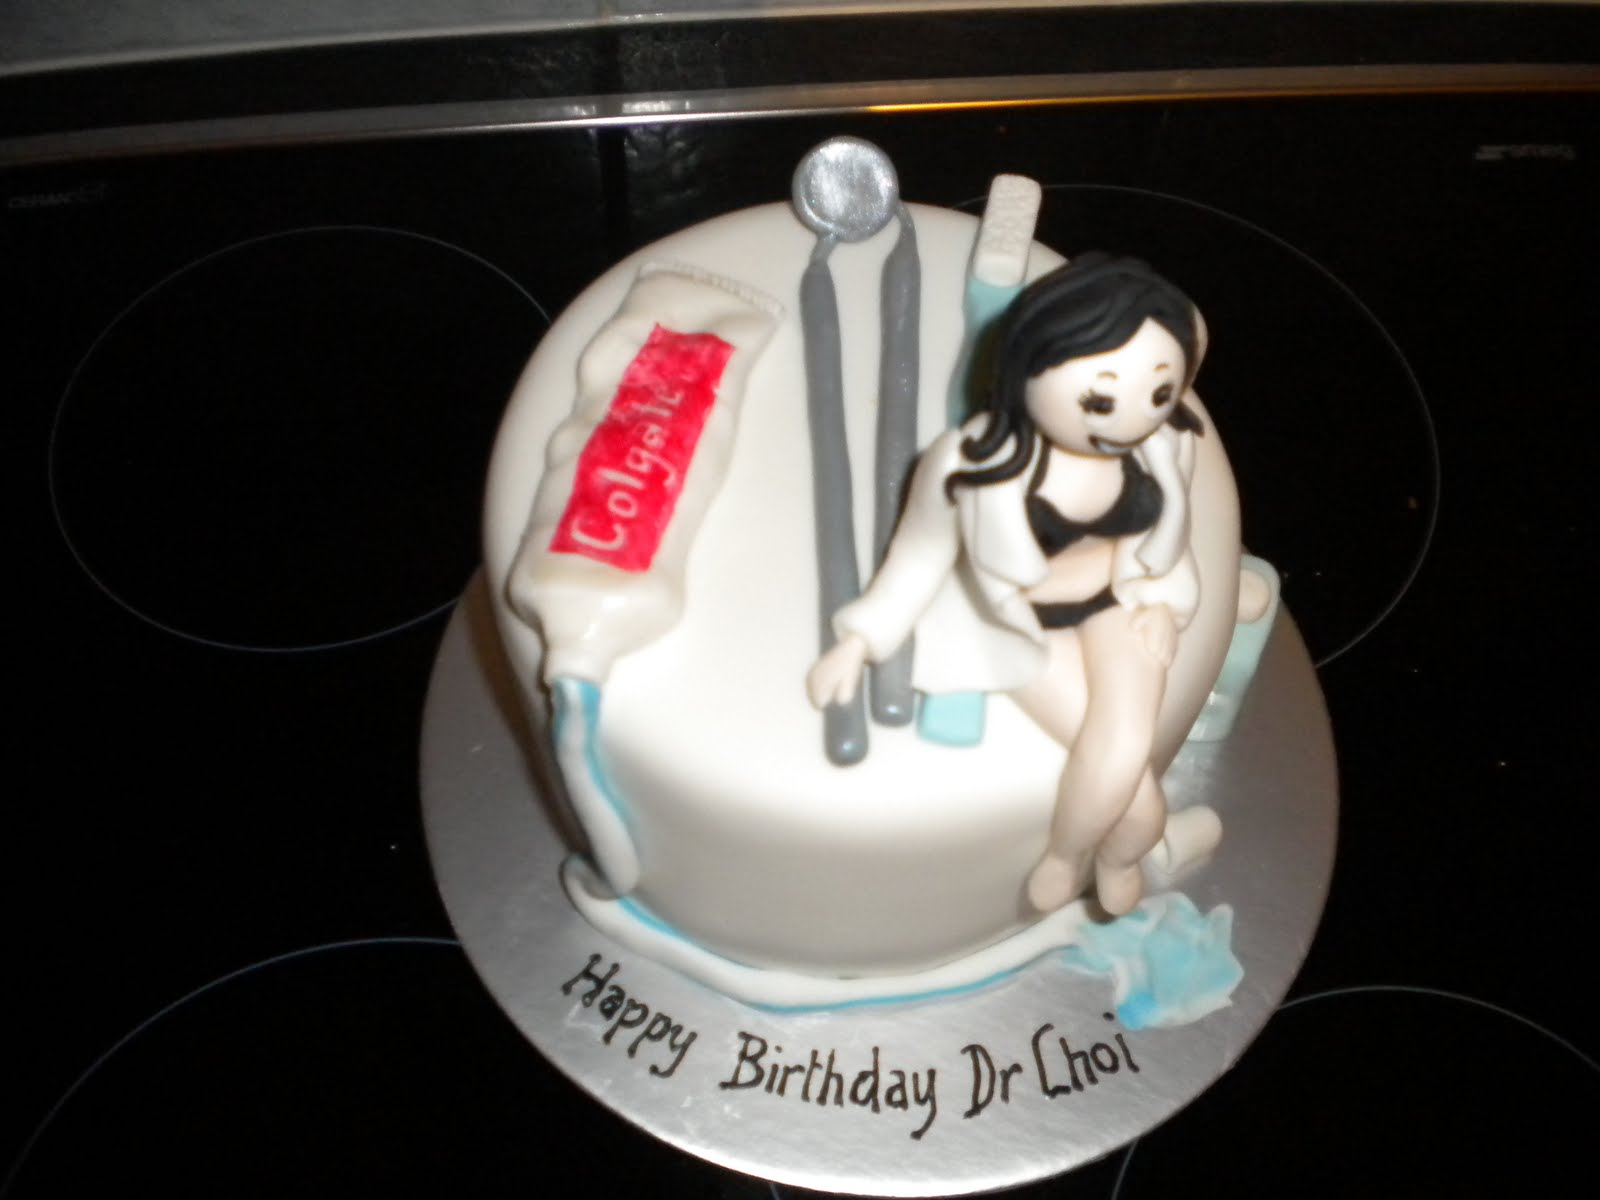 This Was A Cheeky Little Bit Of Fun For The Dentists Birthday At First When I Asked To Make Cake With Girl On It Assumed That Dr Choi